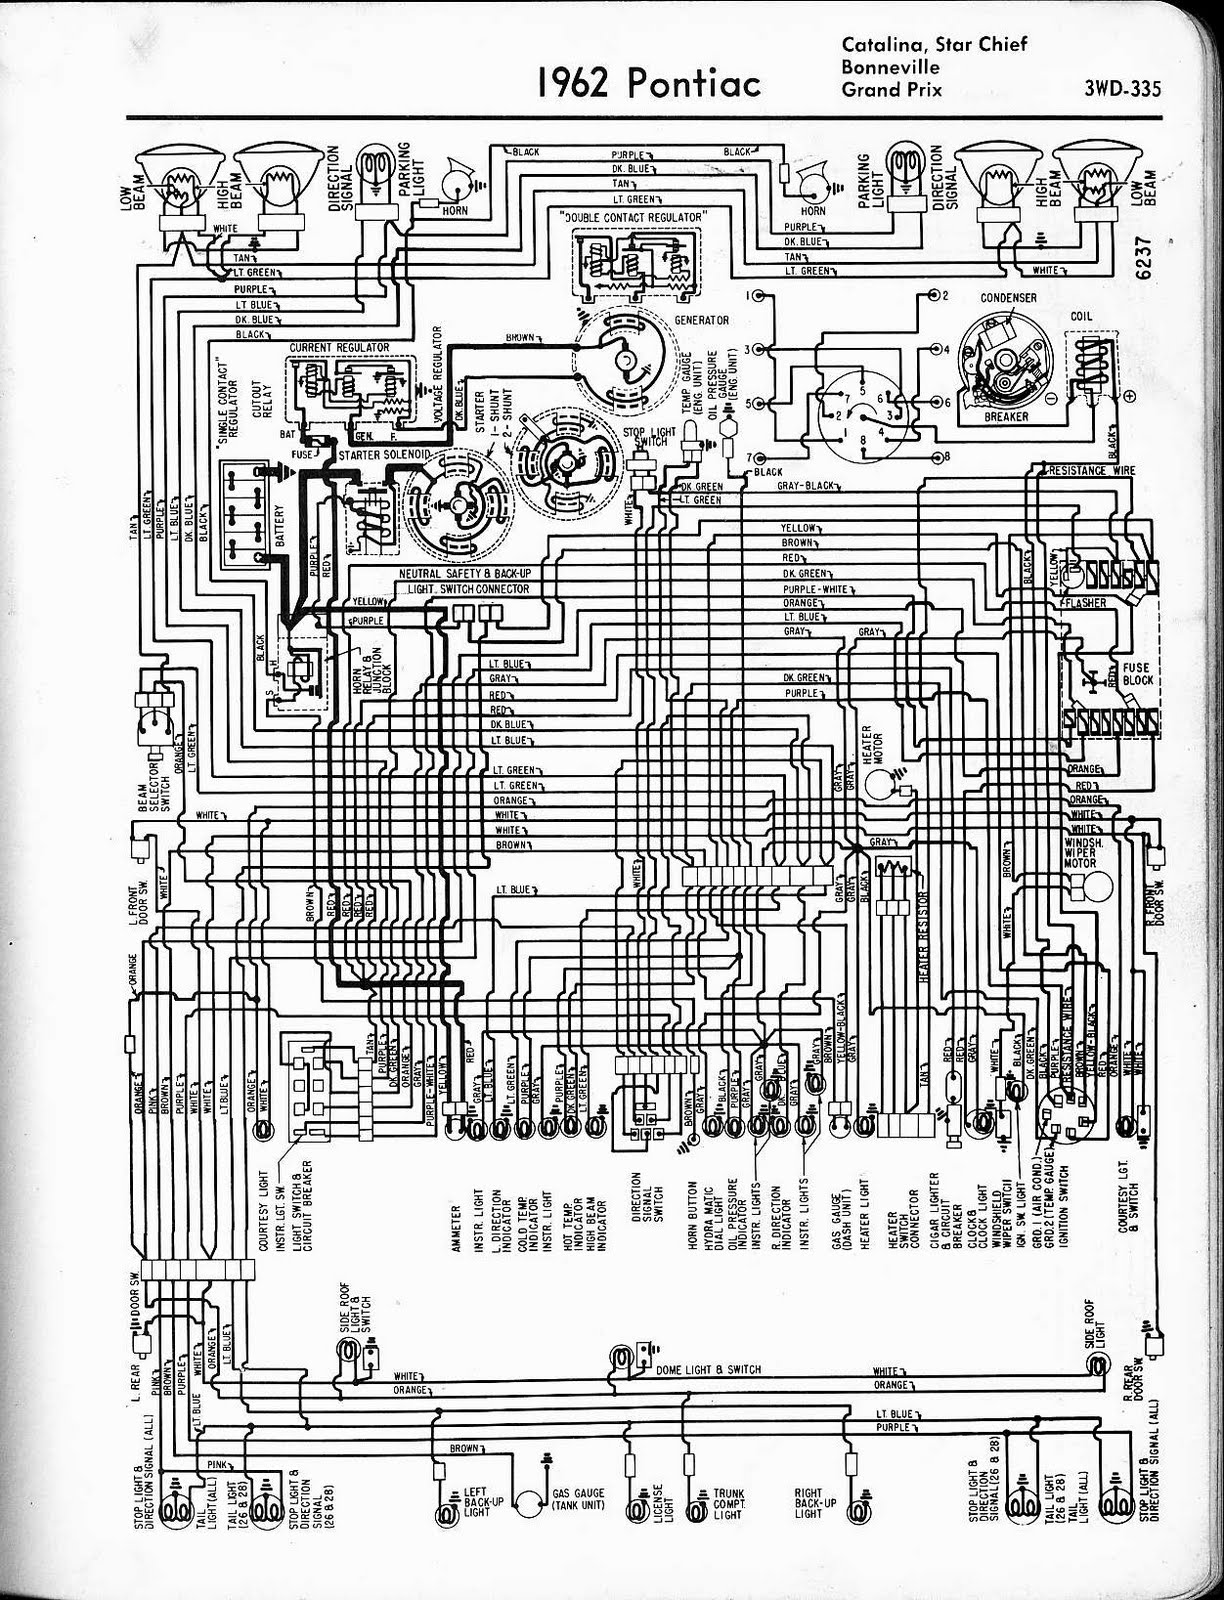 1967 Pontiac Wiring Harness Wiring Diagram Database. 1967 Pontiac Wiring  Harness Wiring Diagram Database. 1978 Alfa Romeo 2000 Spider ...